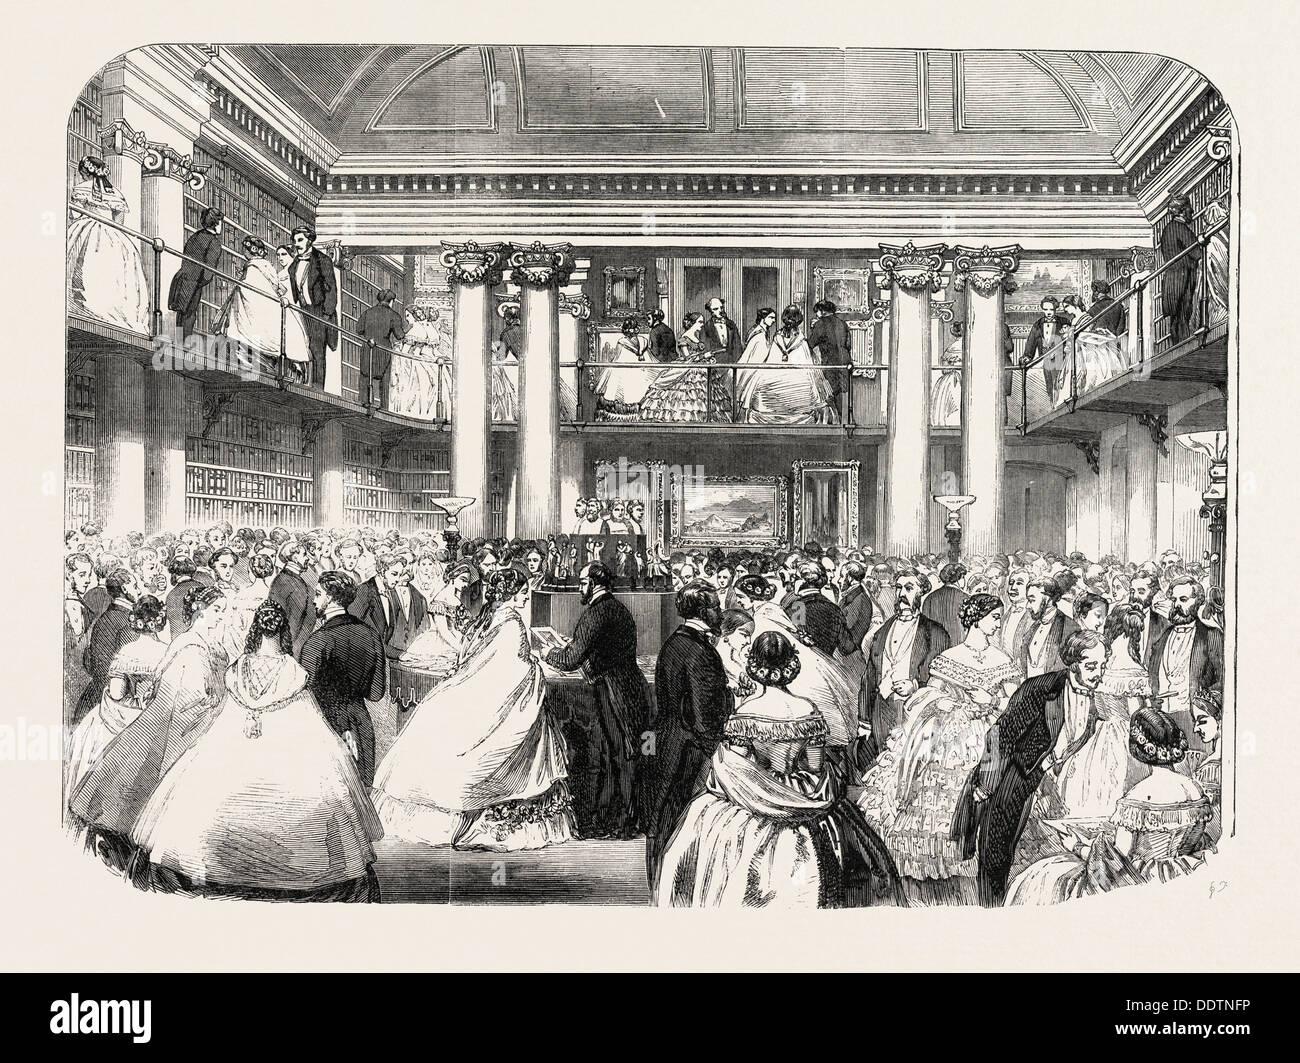 LITERARY REUNION IN MR. MUDIE'S NEW HALL, 1860 engraving - Stock Image